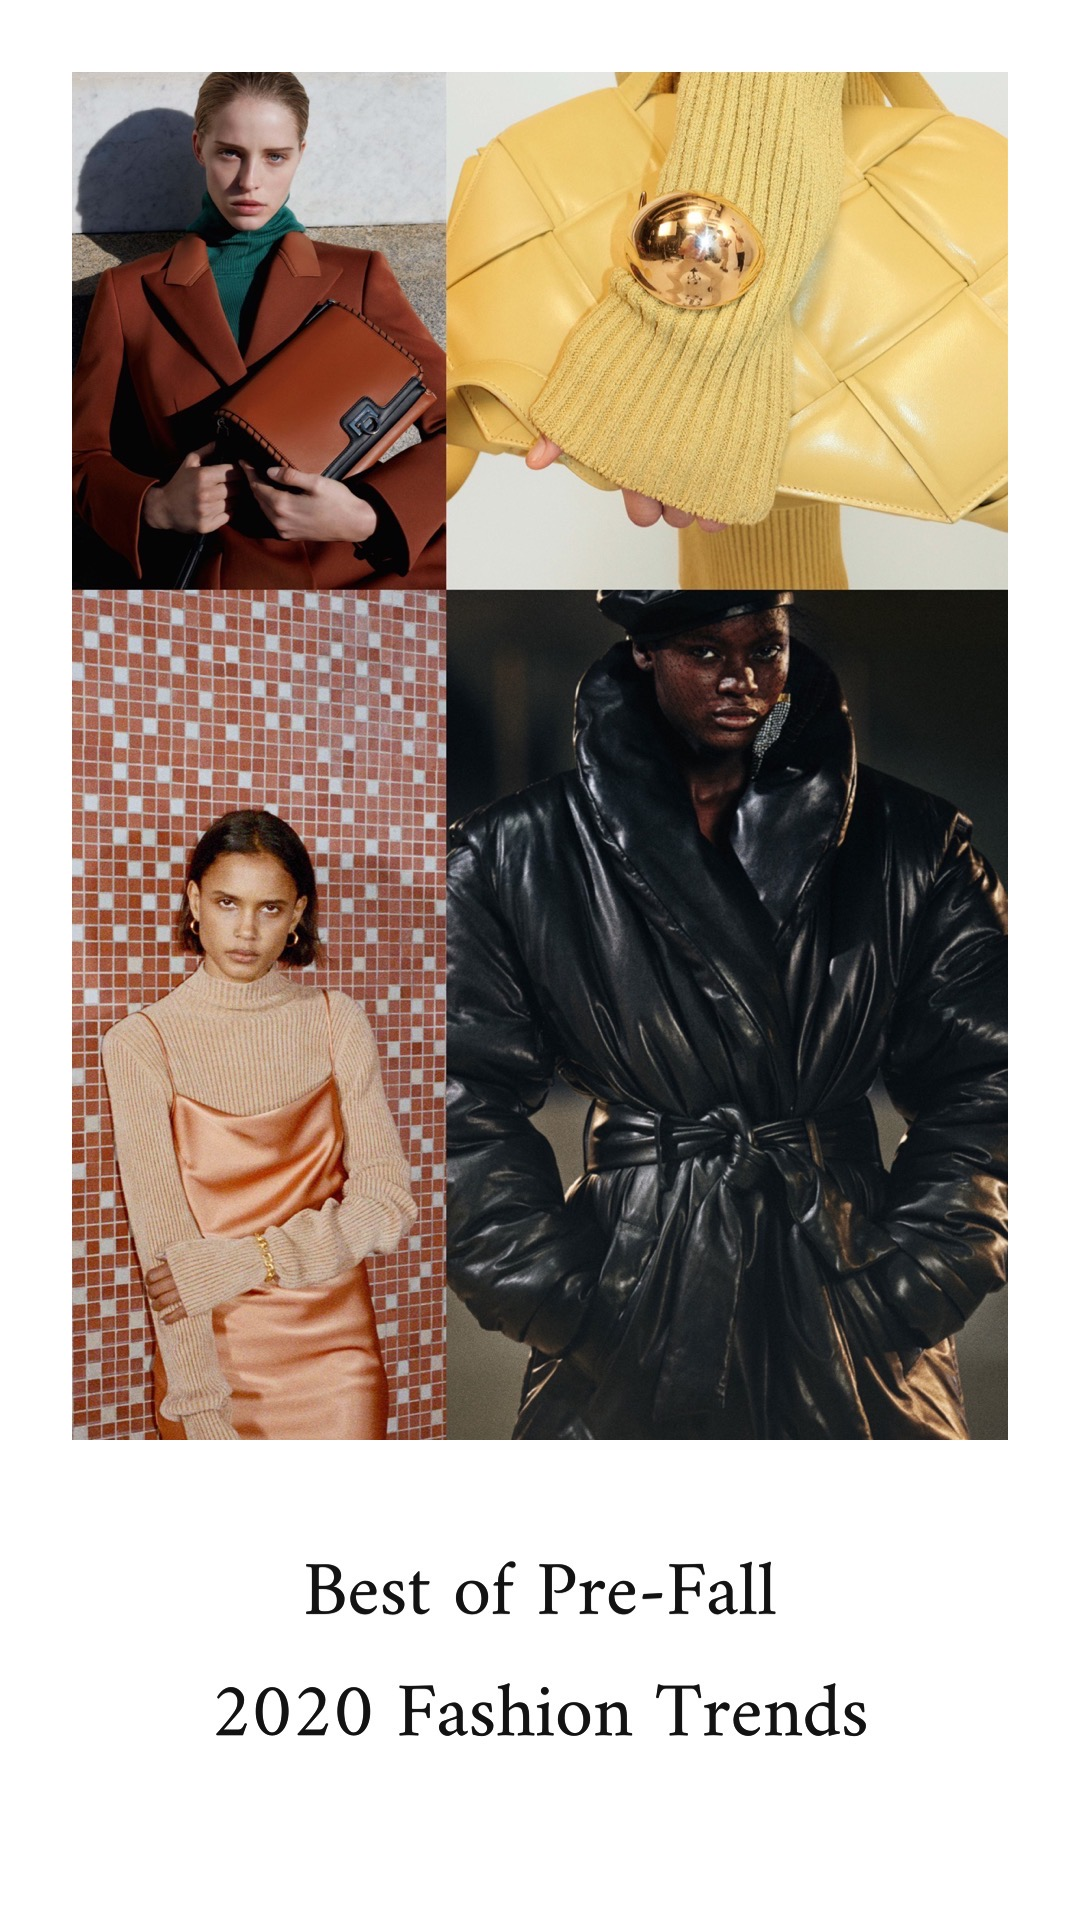 Best Pre-Fall 2020 fashion trends Ready To Wear Vogue Proenza Schouler, Nanushka, Bottega Veneta, Balmain, Sally La Pointe, Chanel